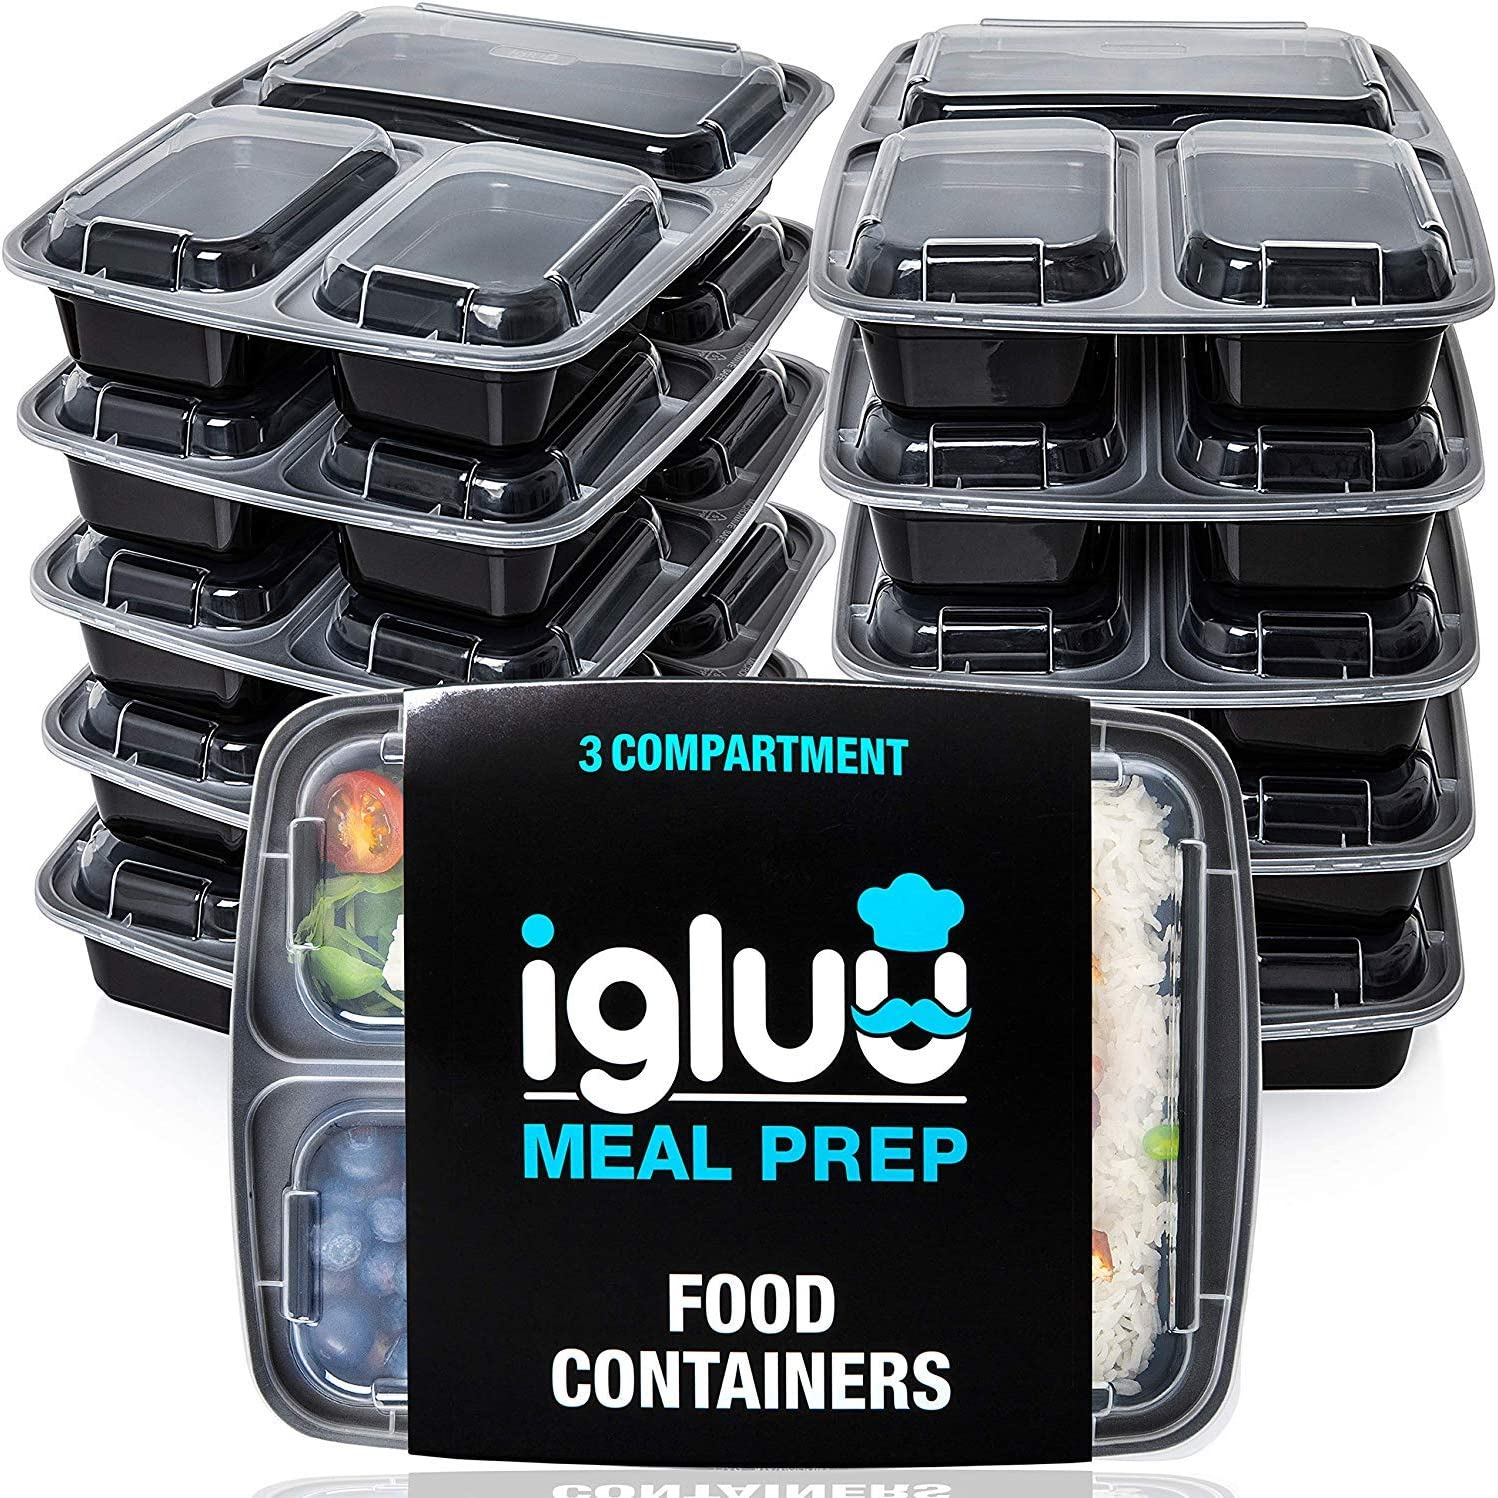 Igluu Meal Prep Containers [10 pack] 3 Compartment with Airtight Lids - Plastic Food Storage Bento Box - BPA Free - Reusable Lunch Boxes - Microwavable, Freezer and Dishwasher Safe - Bonus eBook